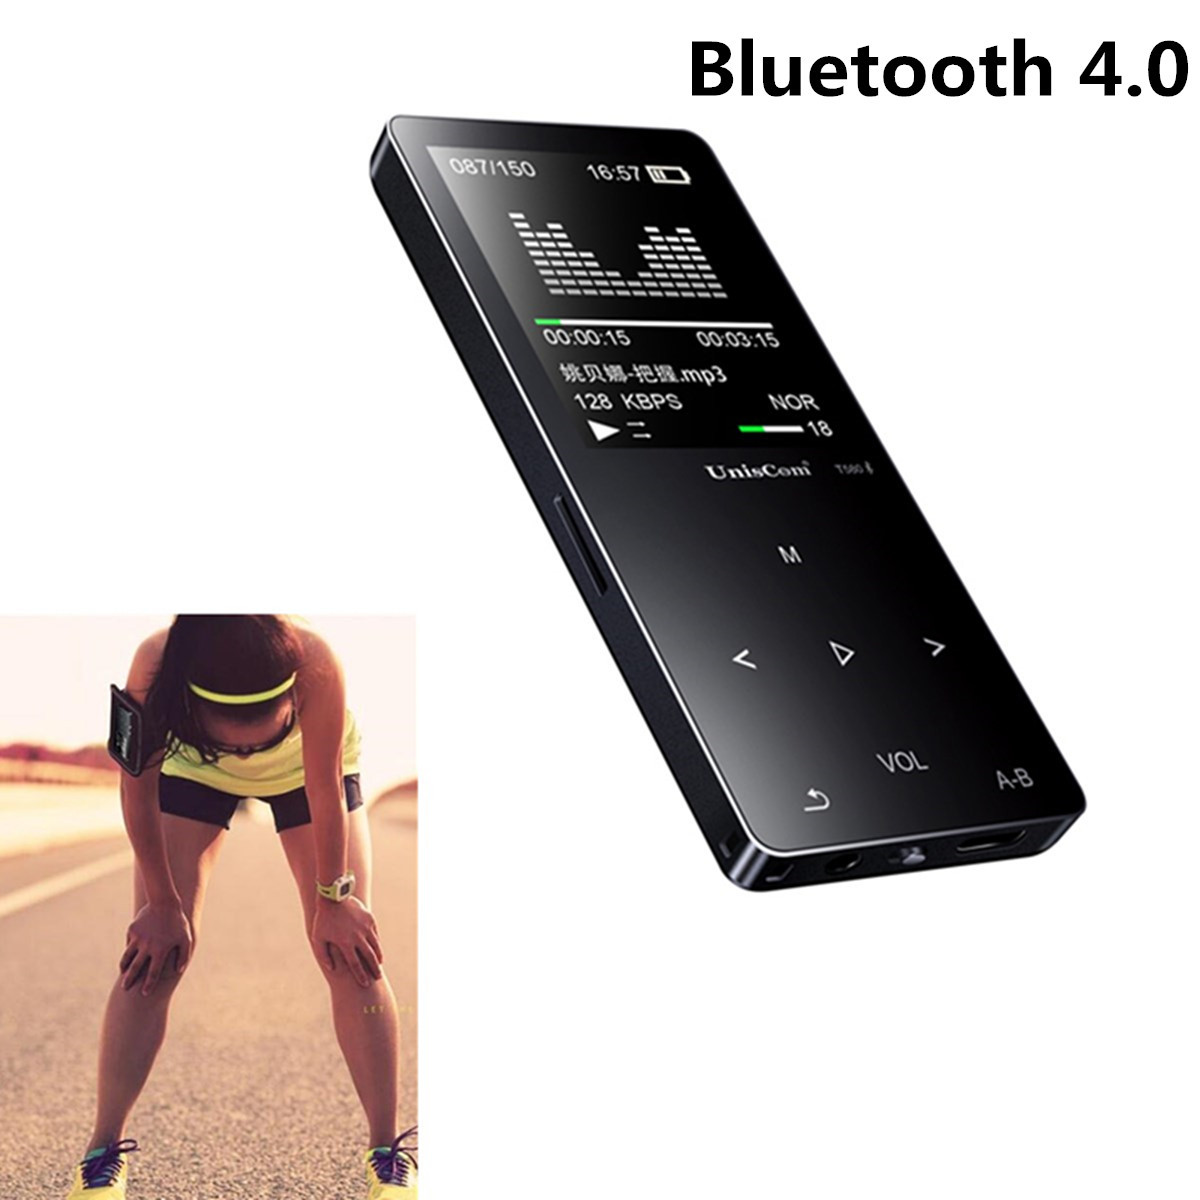 Uniscom 8G 1.8 Inch Screen bluetooth Lossless HIFI MP3 Music Player Support A-B Repeat Voice Record